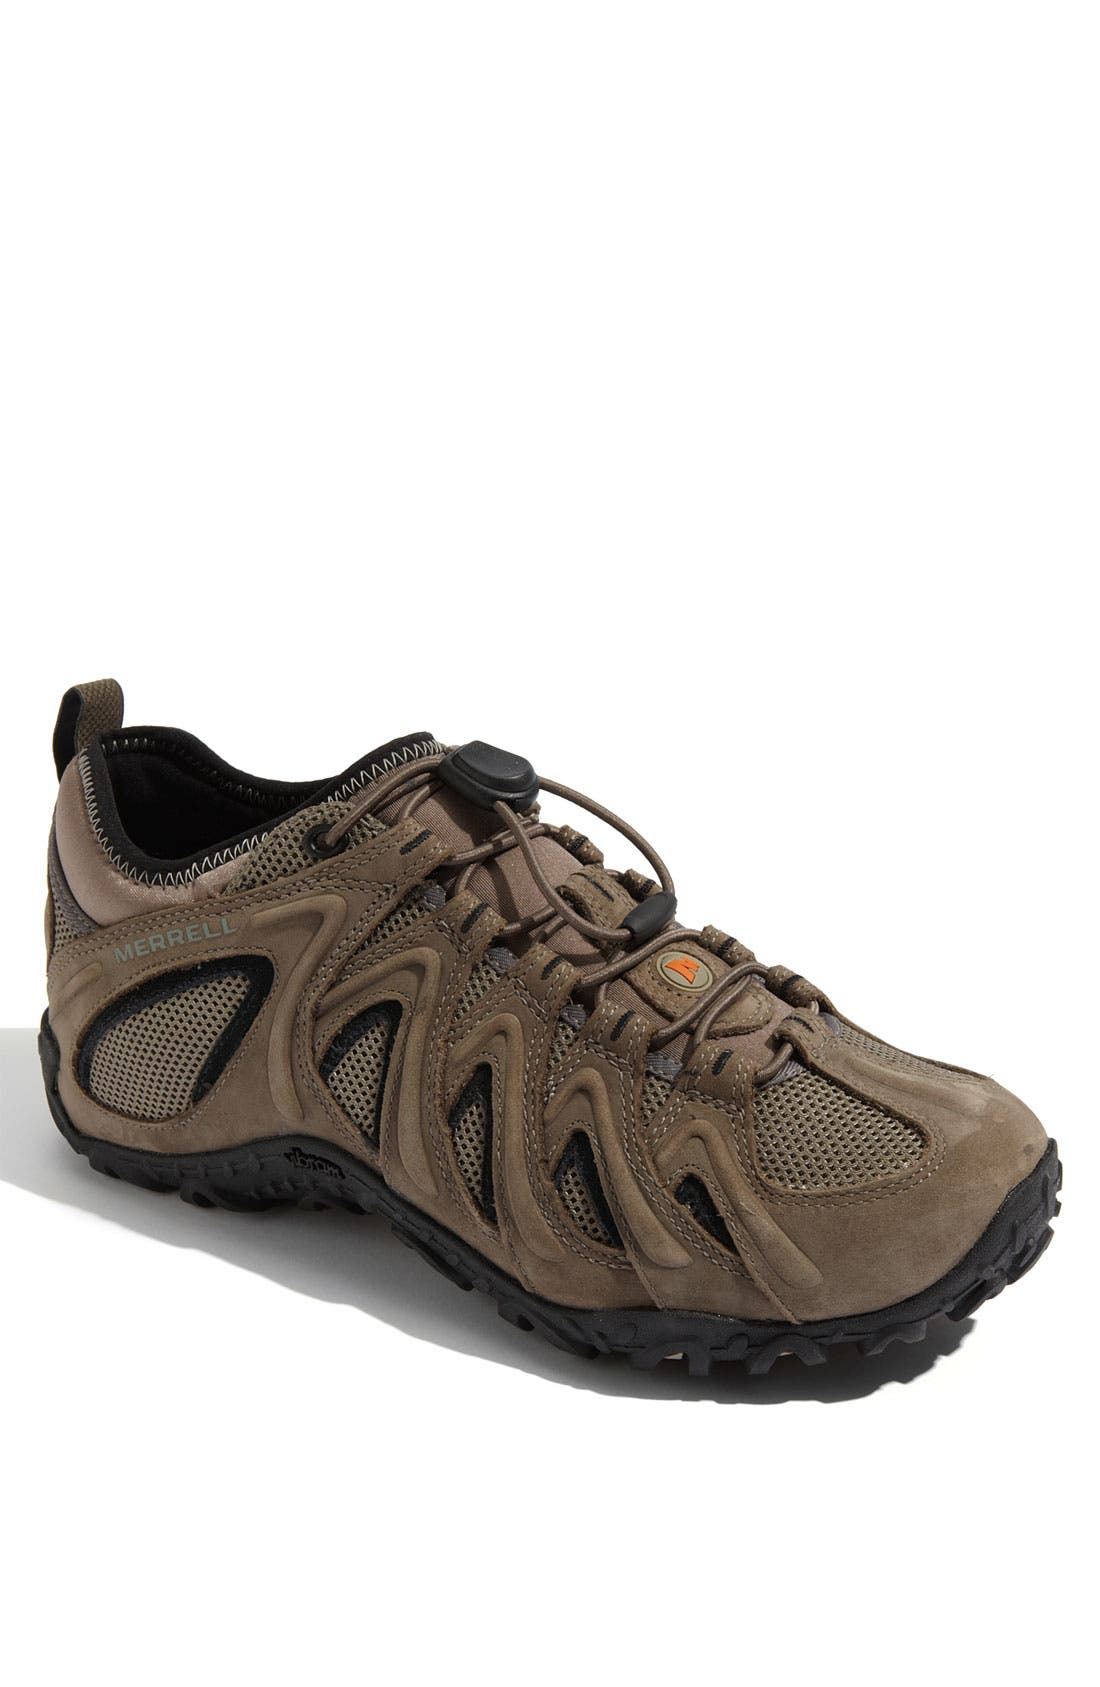 Alternate Image 1 Selected - Merrell 'Chameleon 4' Hiking Shoe (Men)